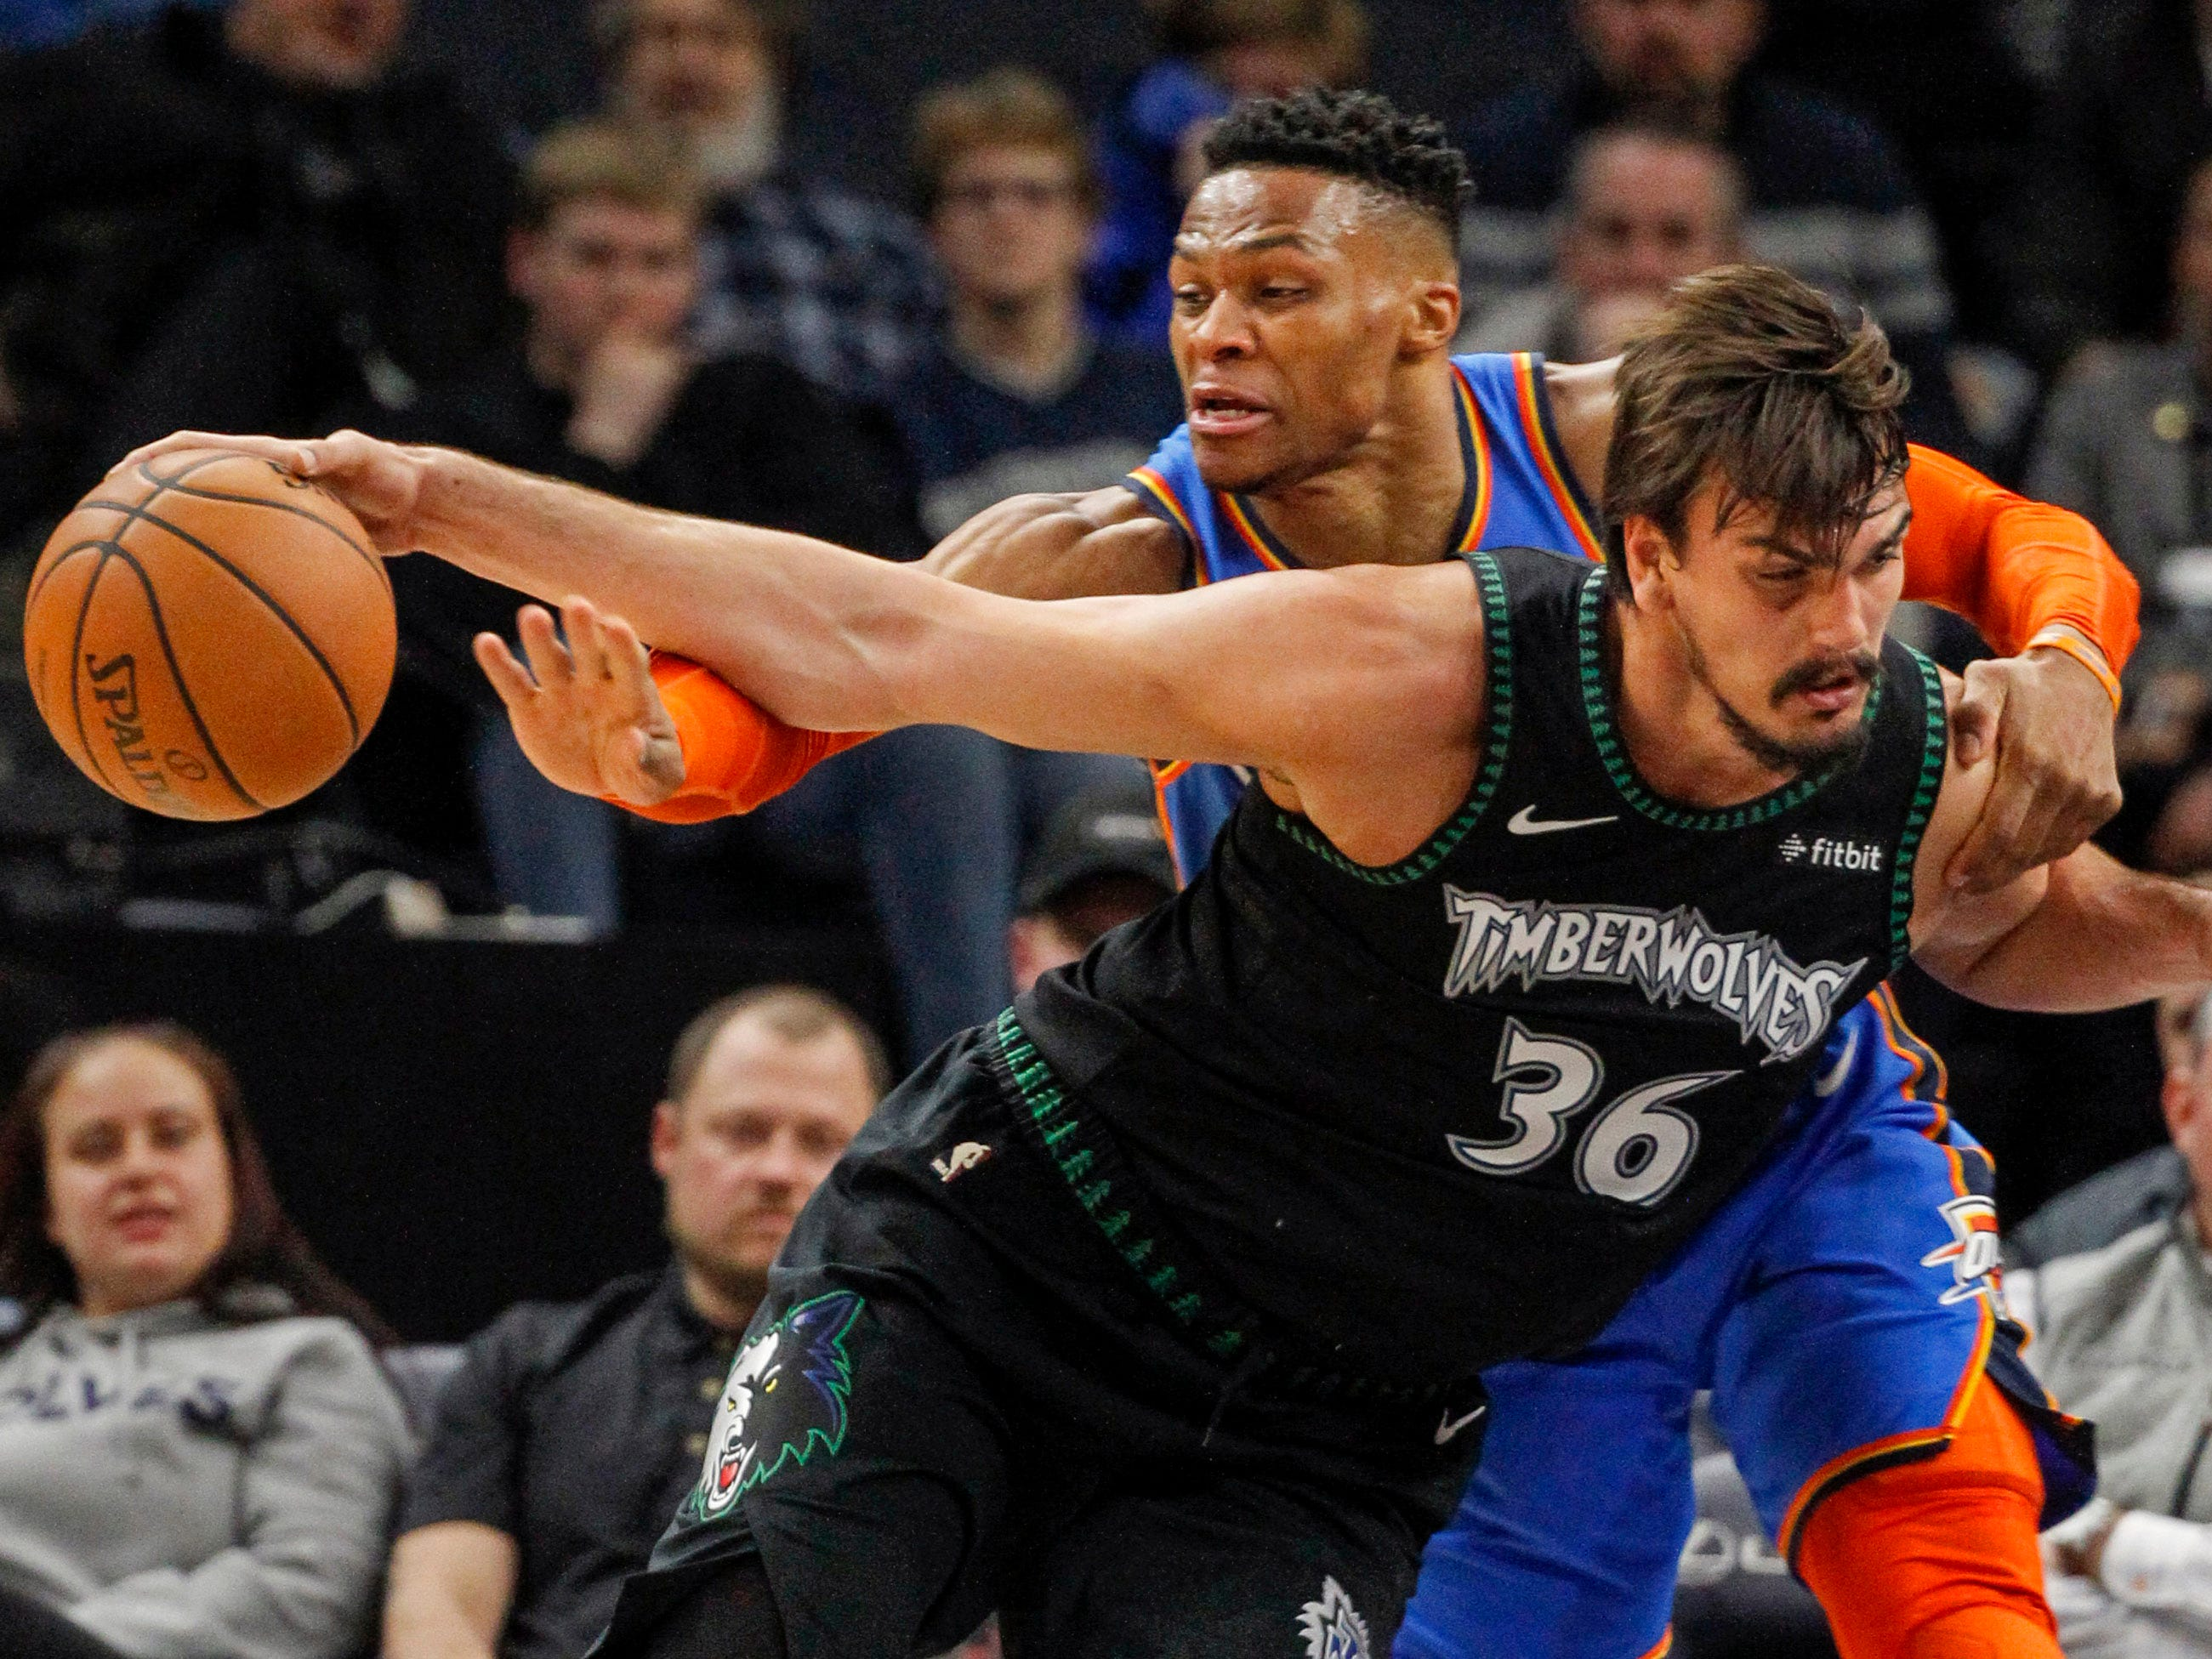 March 5: Oklahoma City Thunder guard Russell Westbrook (0) reaches for the ball that Minnesota Timberwolves forward Dario Saric (36) dribbles in the first quarter at Target Center. The Timberwolves won the game, 131-120.